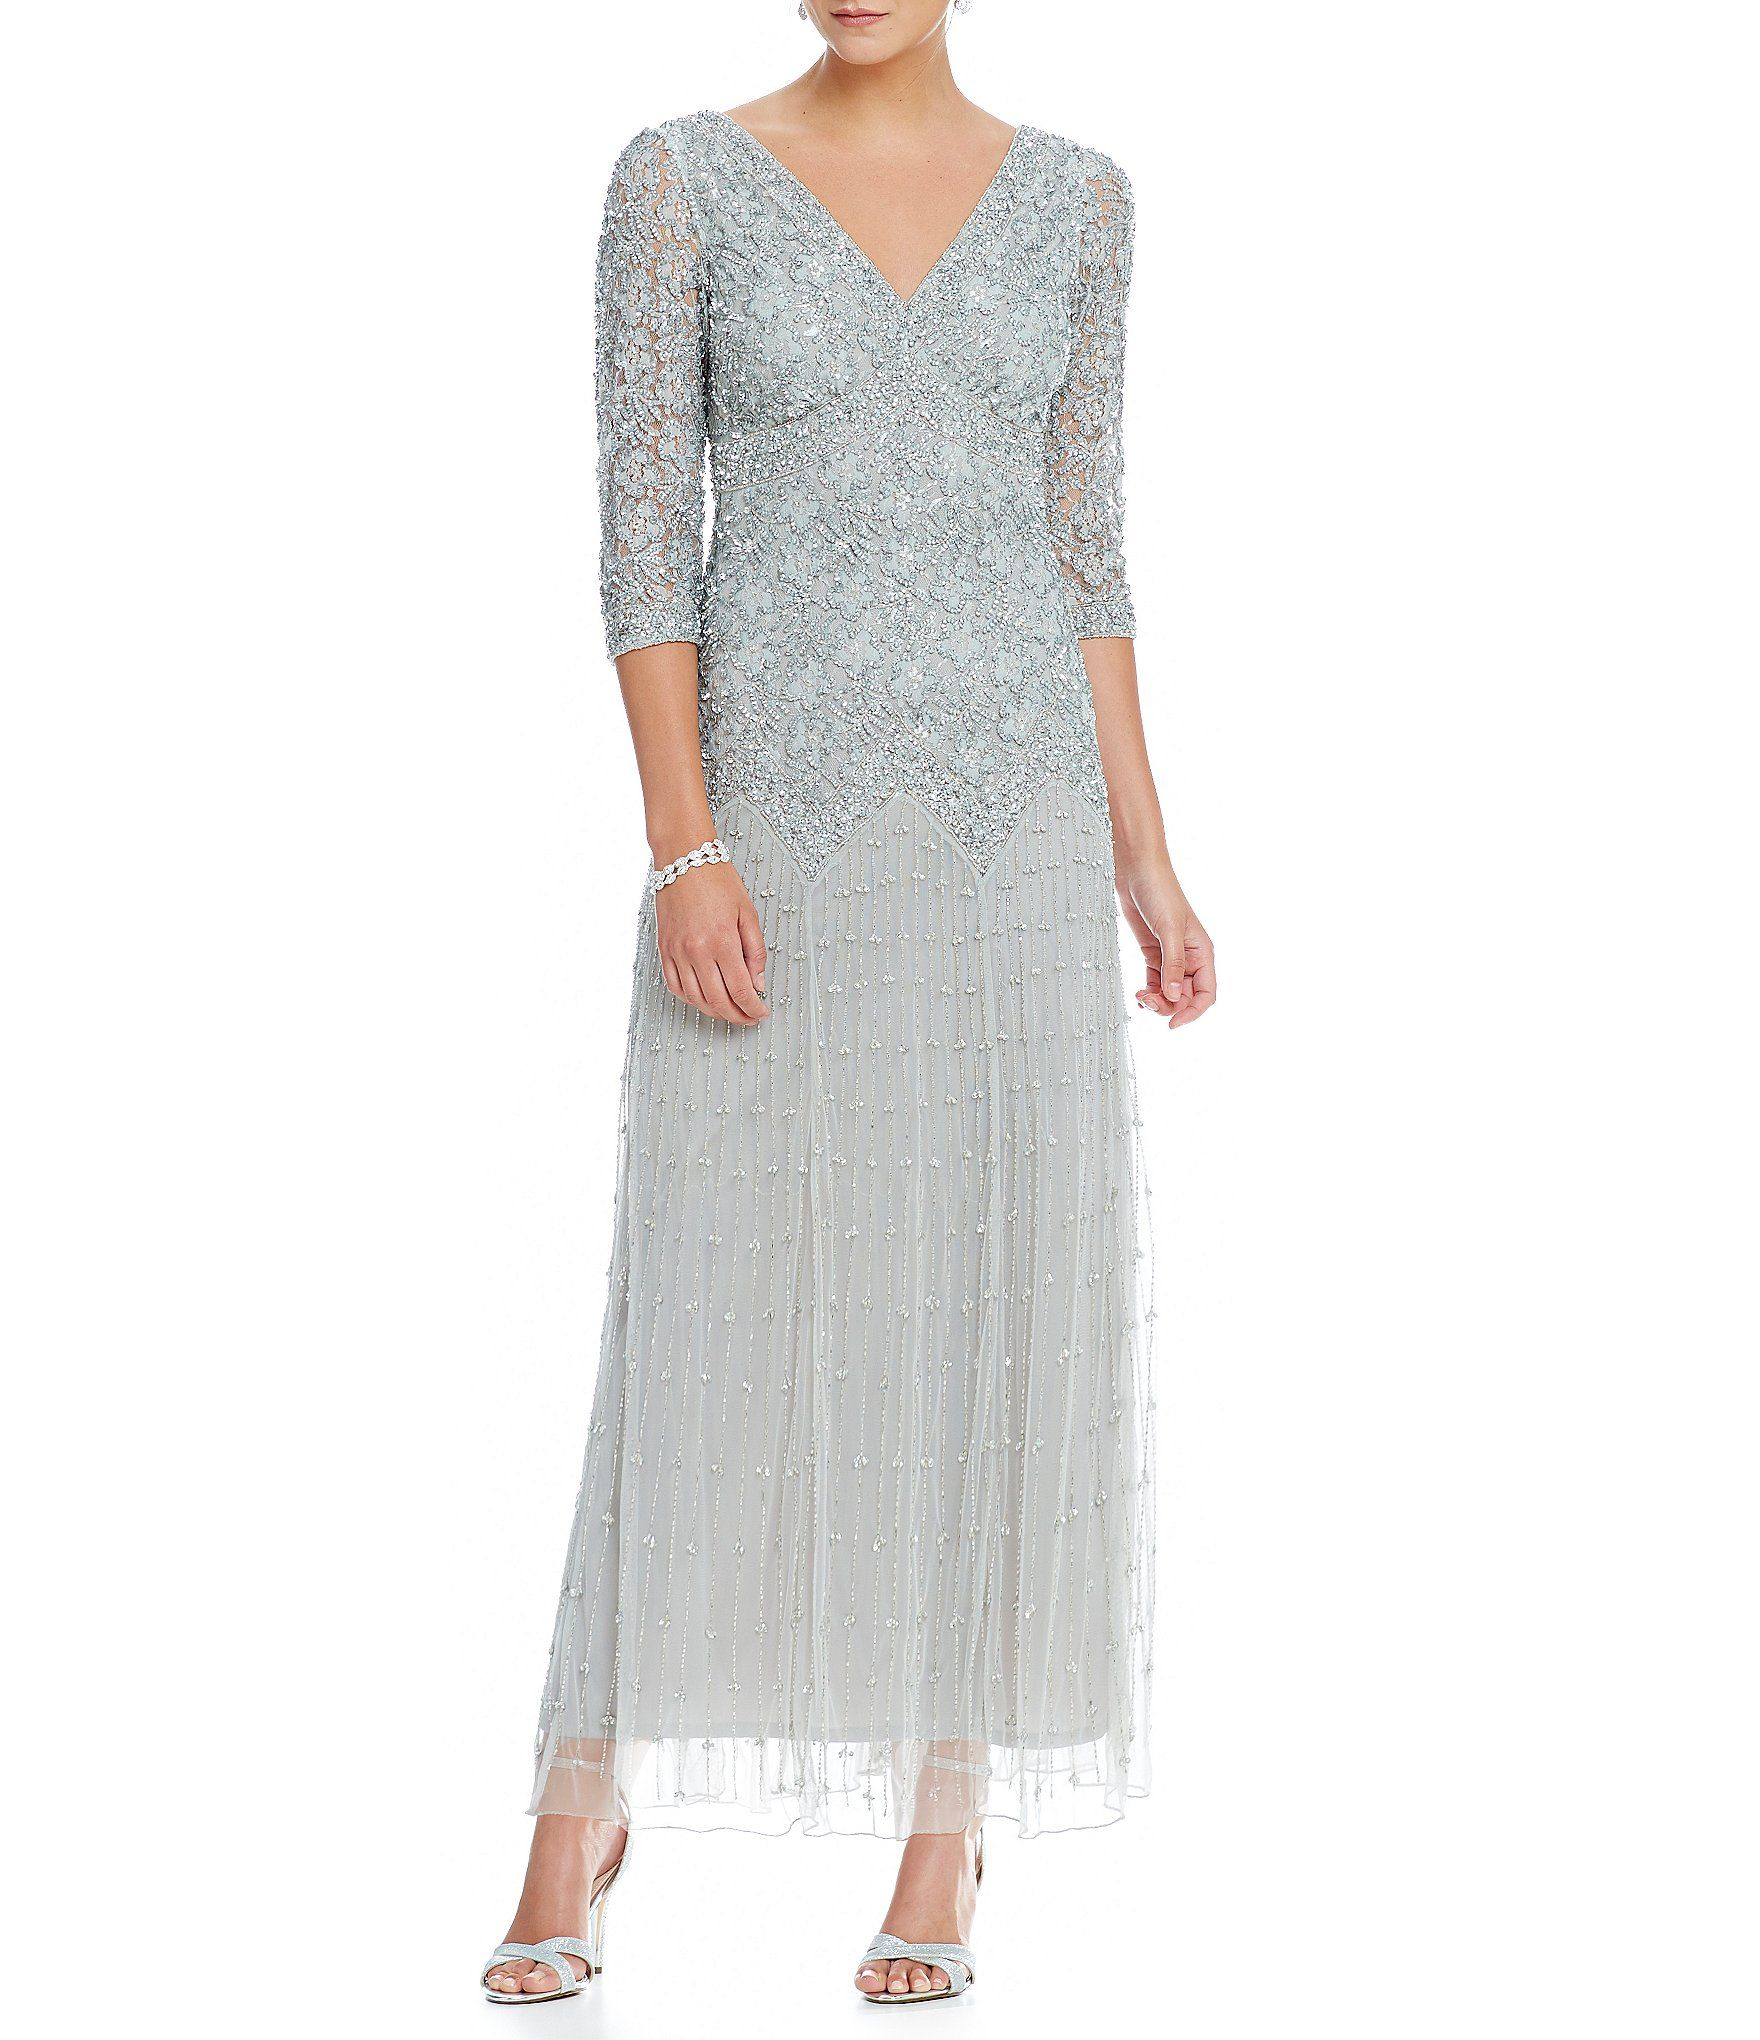 21840ae1071 Dillards Petite Dresses Mother Bride